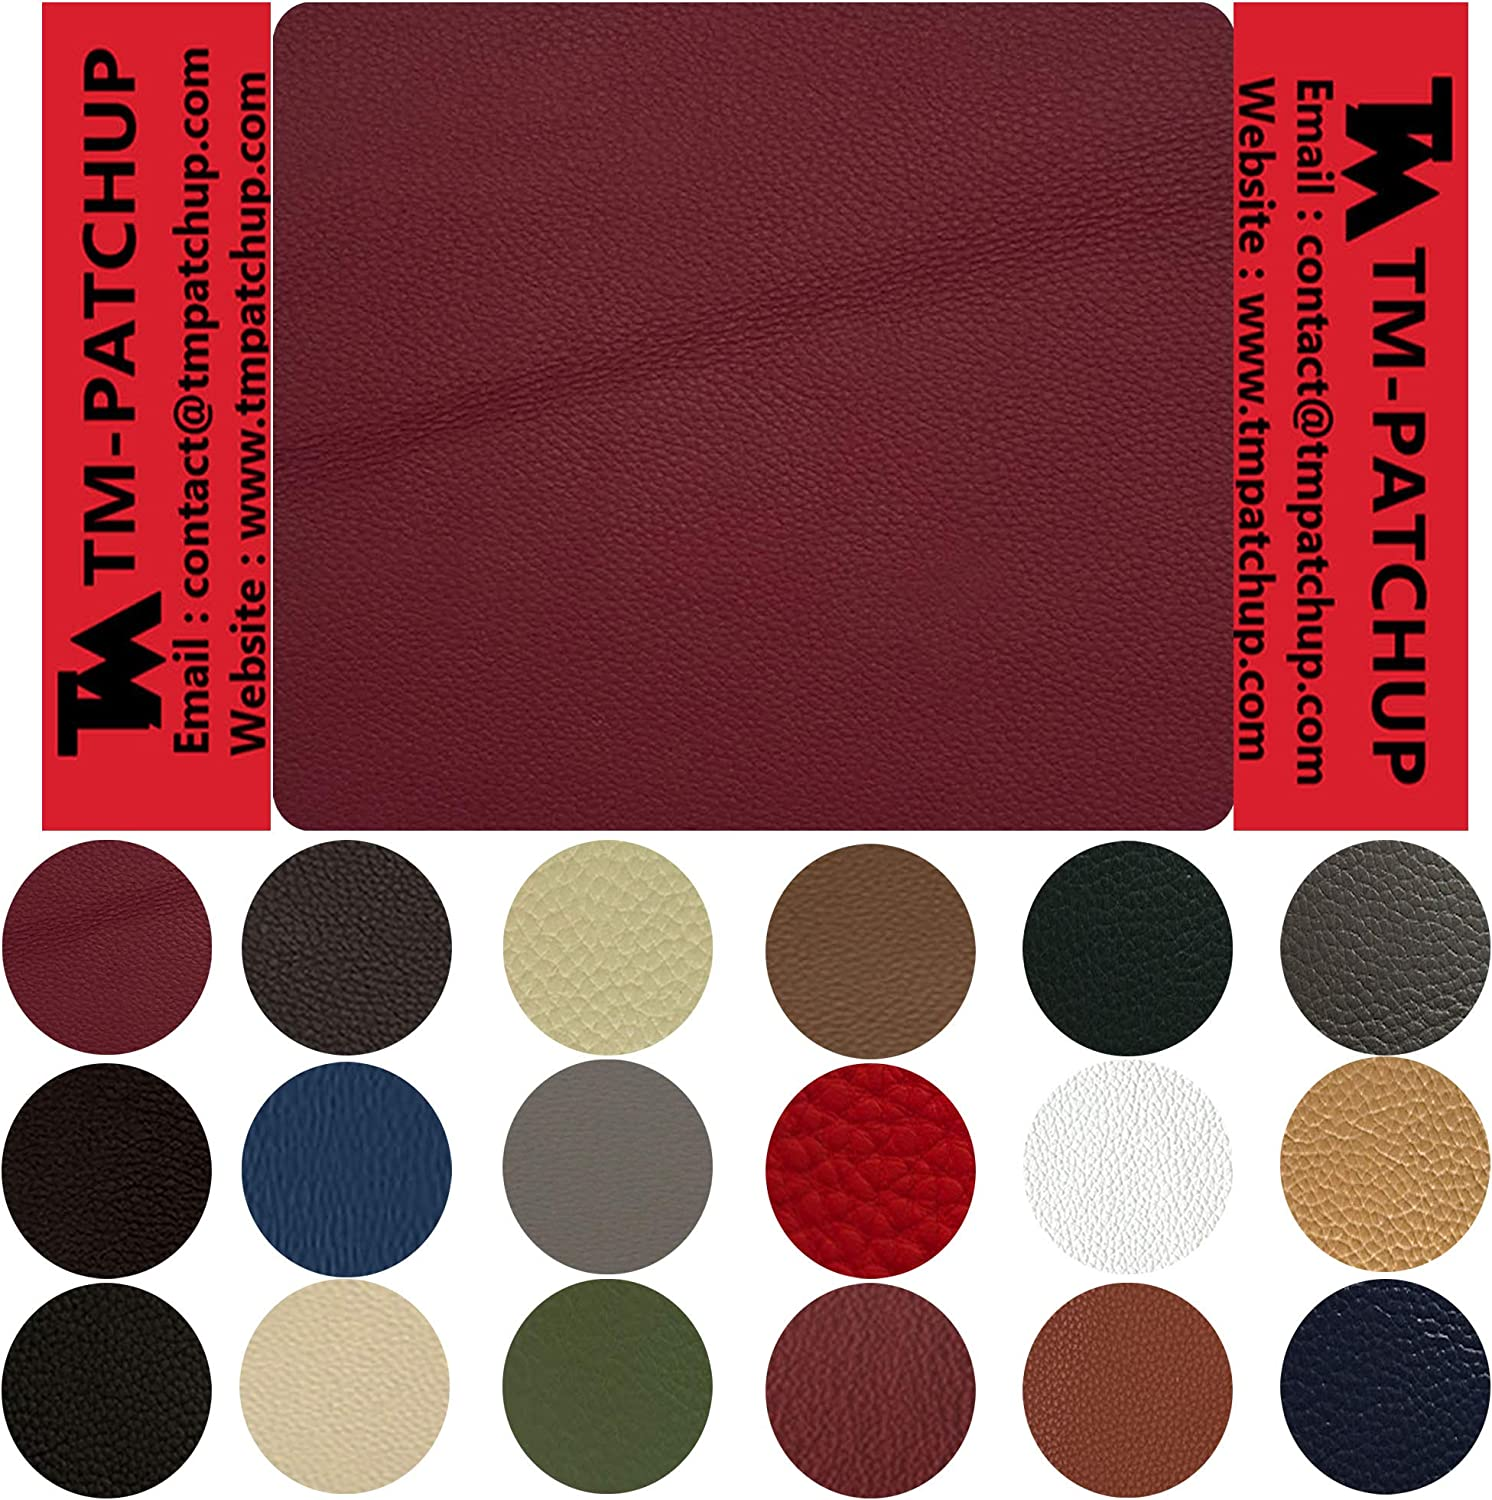 TMpatchup, Burgundy Leather Patches for Furniture, Genuine Leather Repair Patch kit, Peel and Stick for Couch, Sofas, Car Seats, Hand Bags,Furniture, Size 4 x 4 Inch